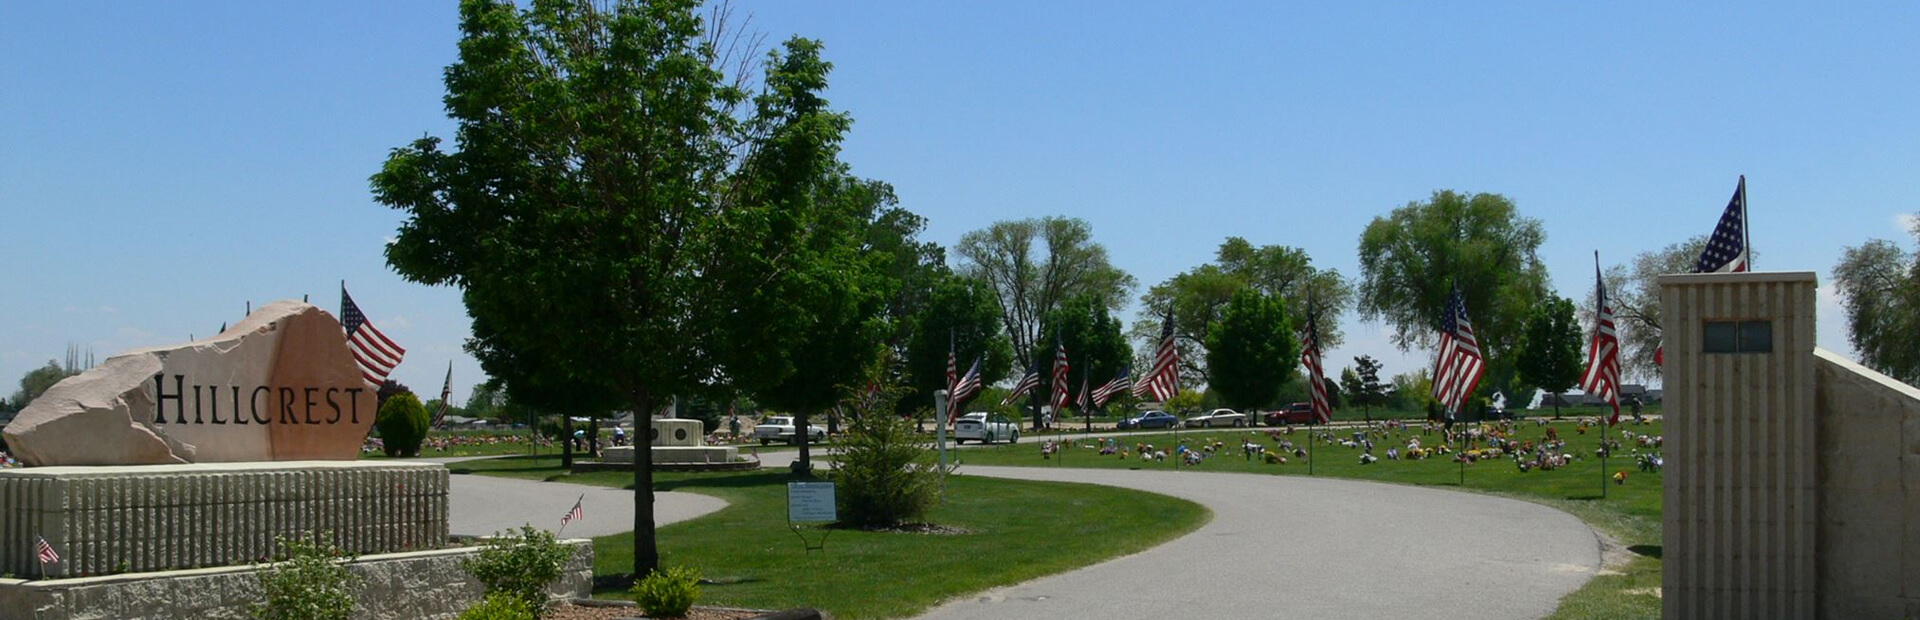 Hillcrest Memorial Gardens in Caldwell, ID